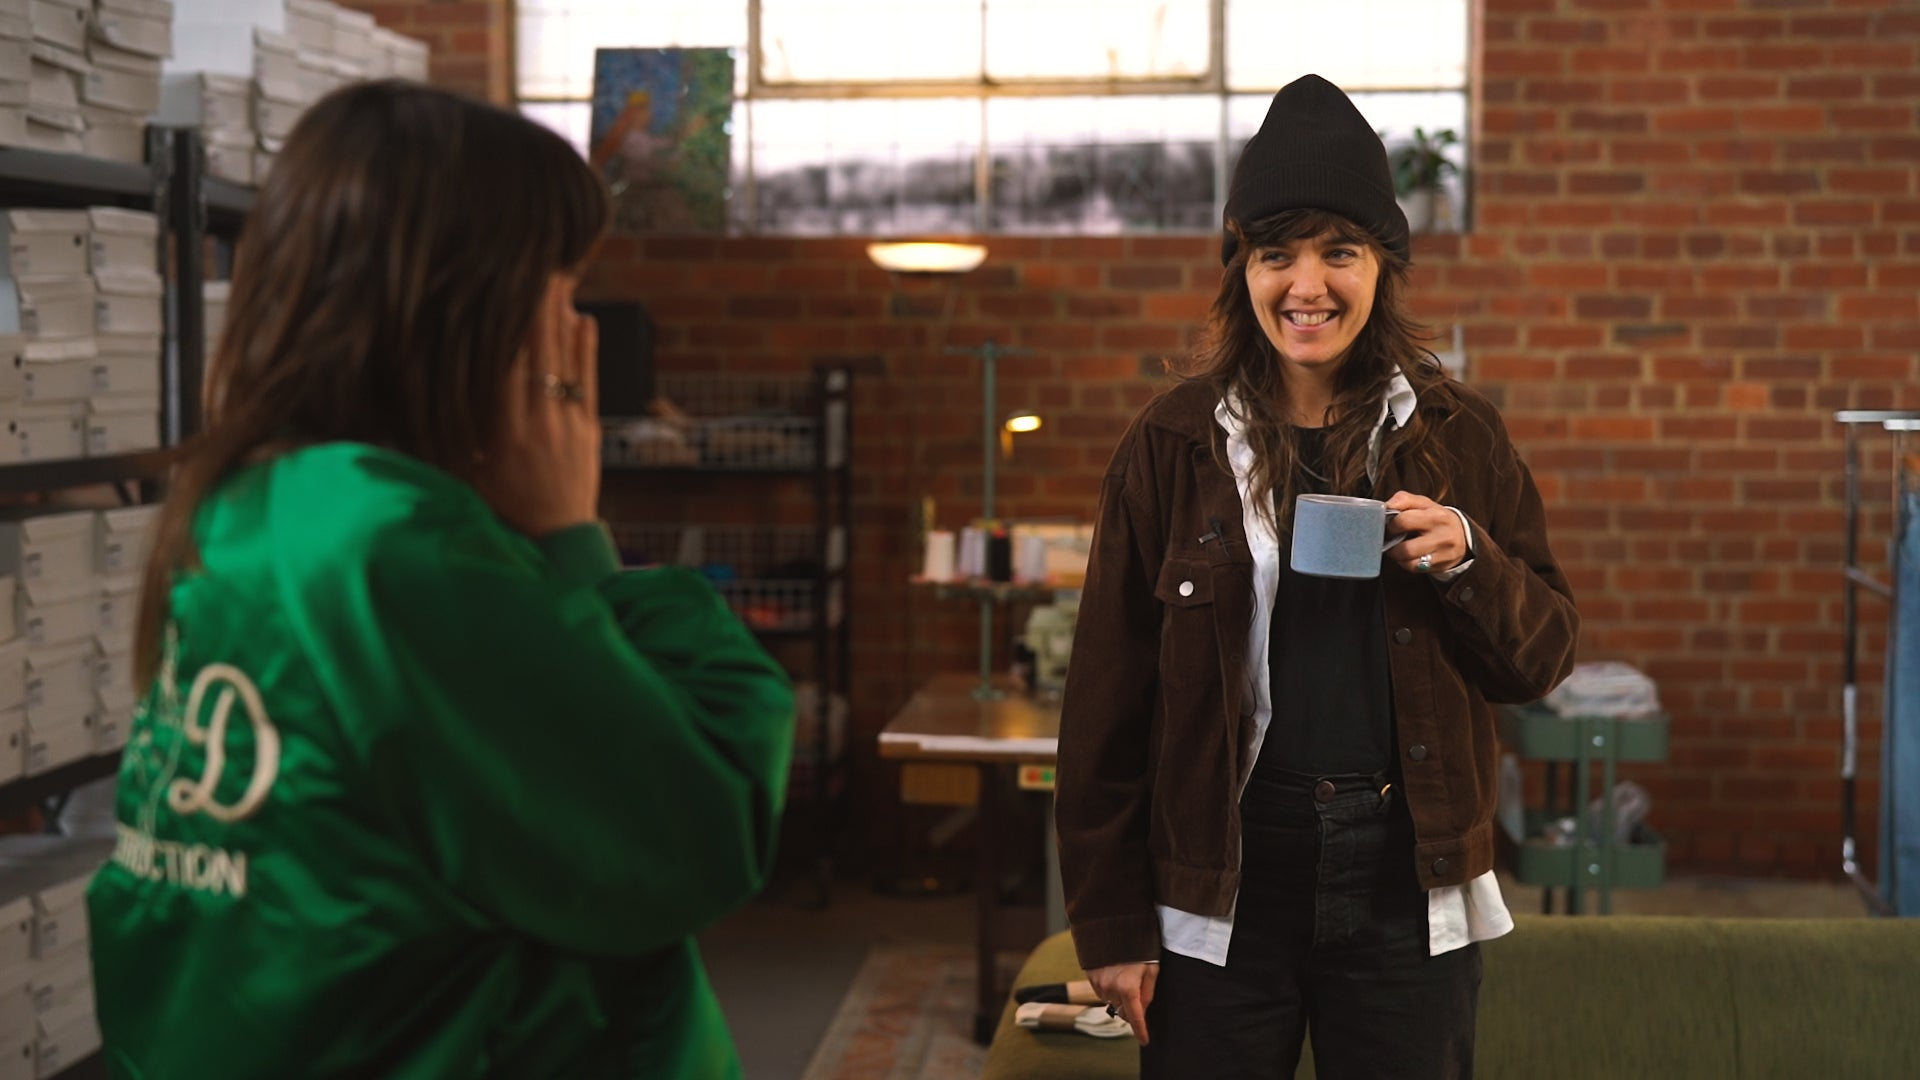 Courtney Barnett on Coffee with a creative presented by Noskin